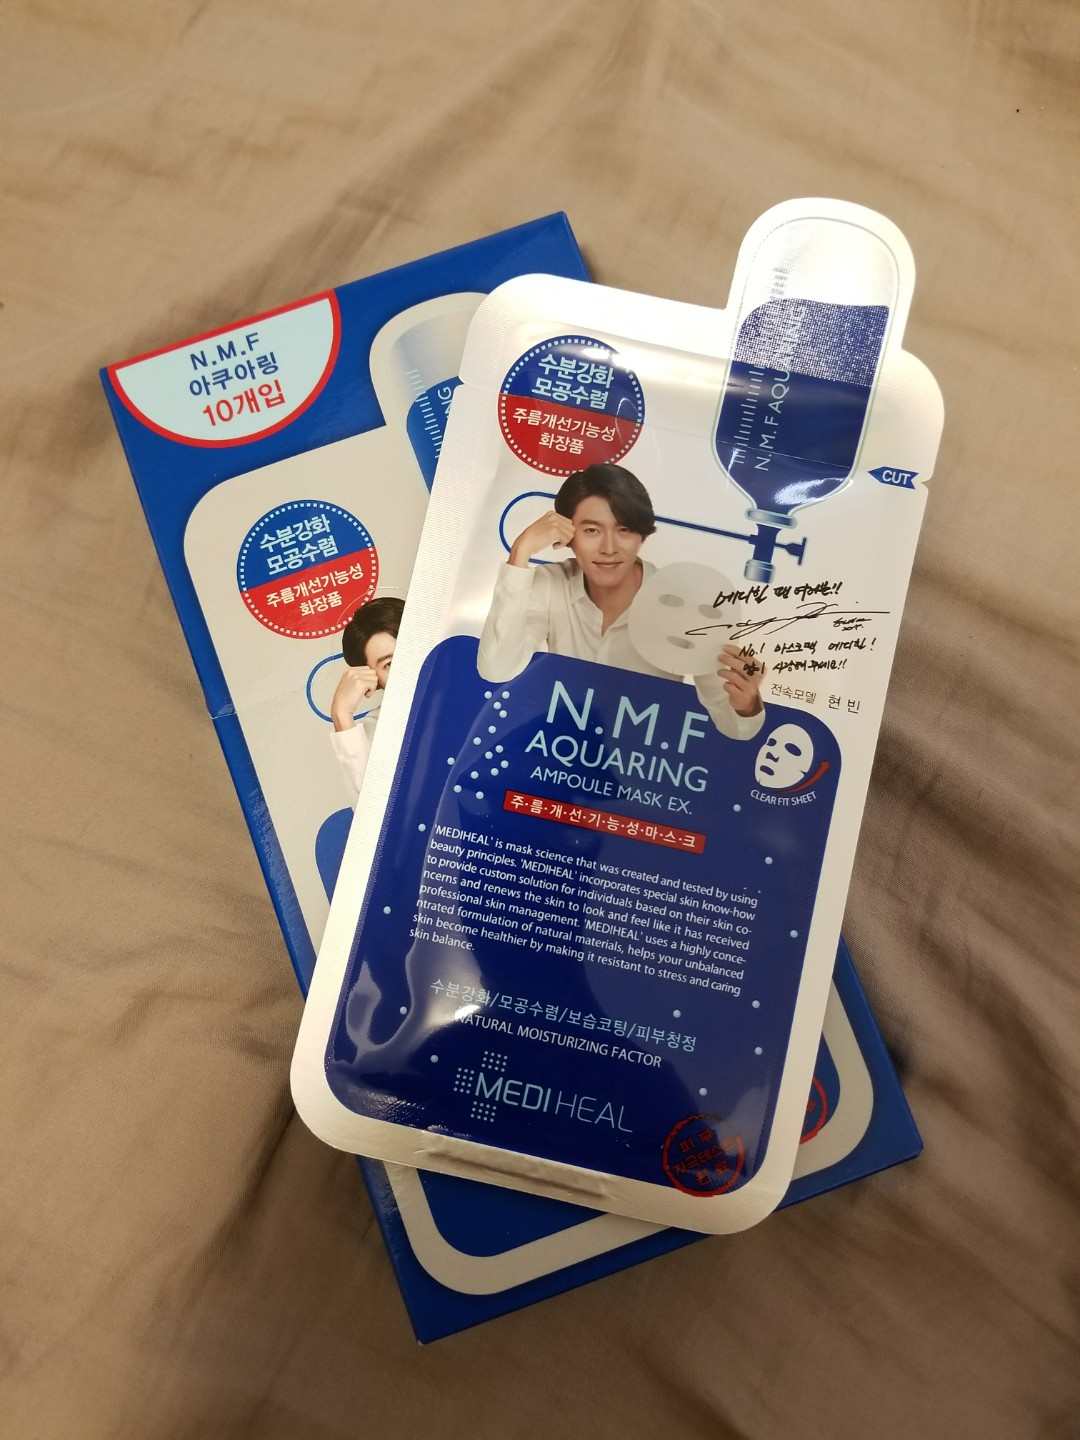 Mediheal Aquaring Mask